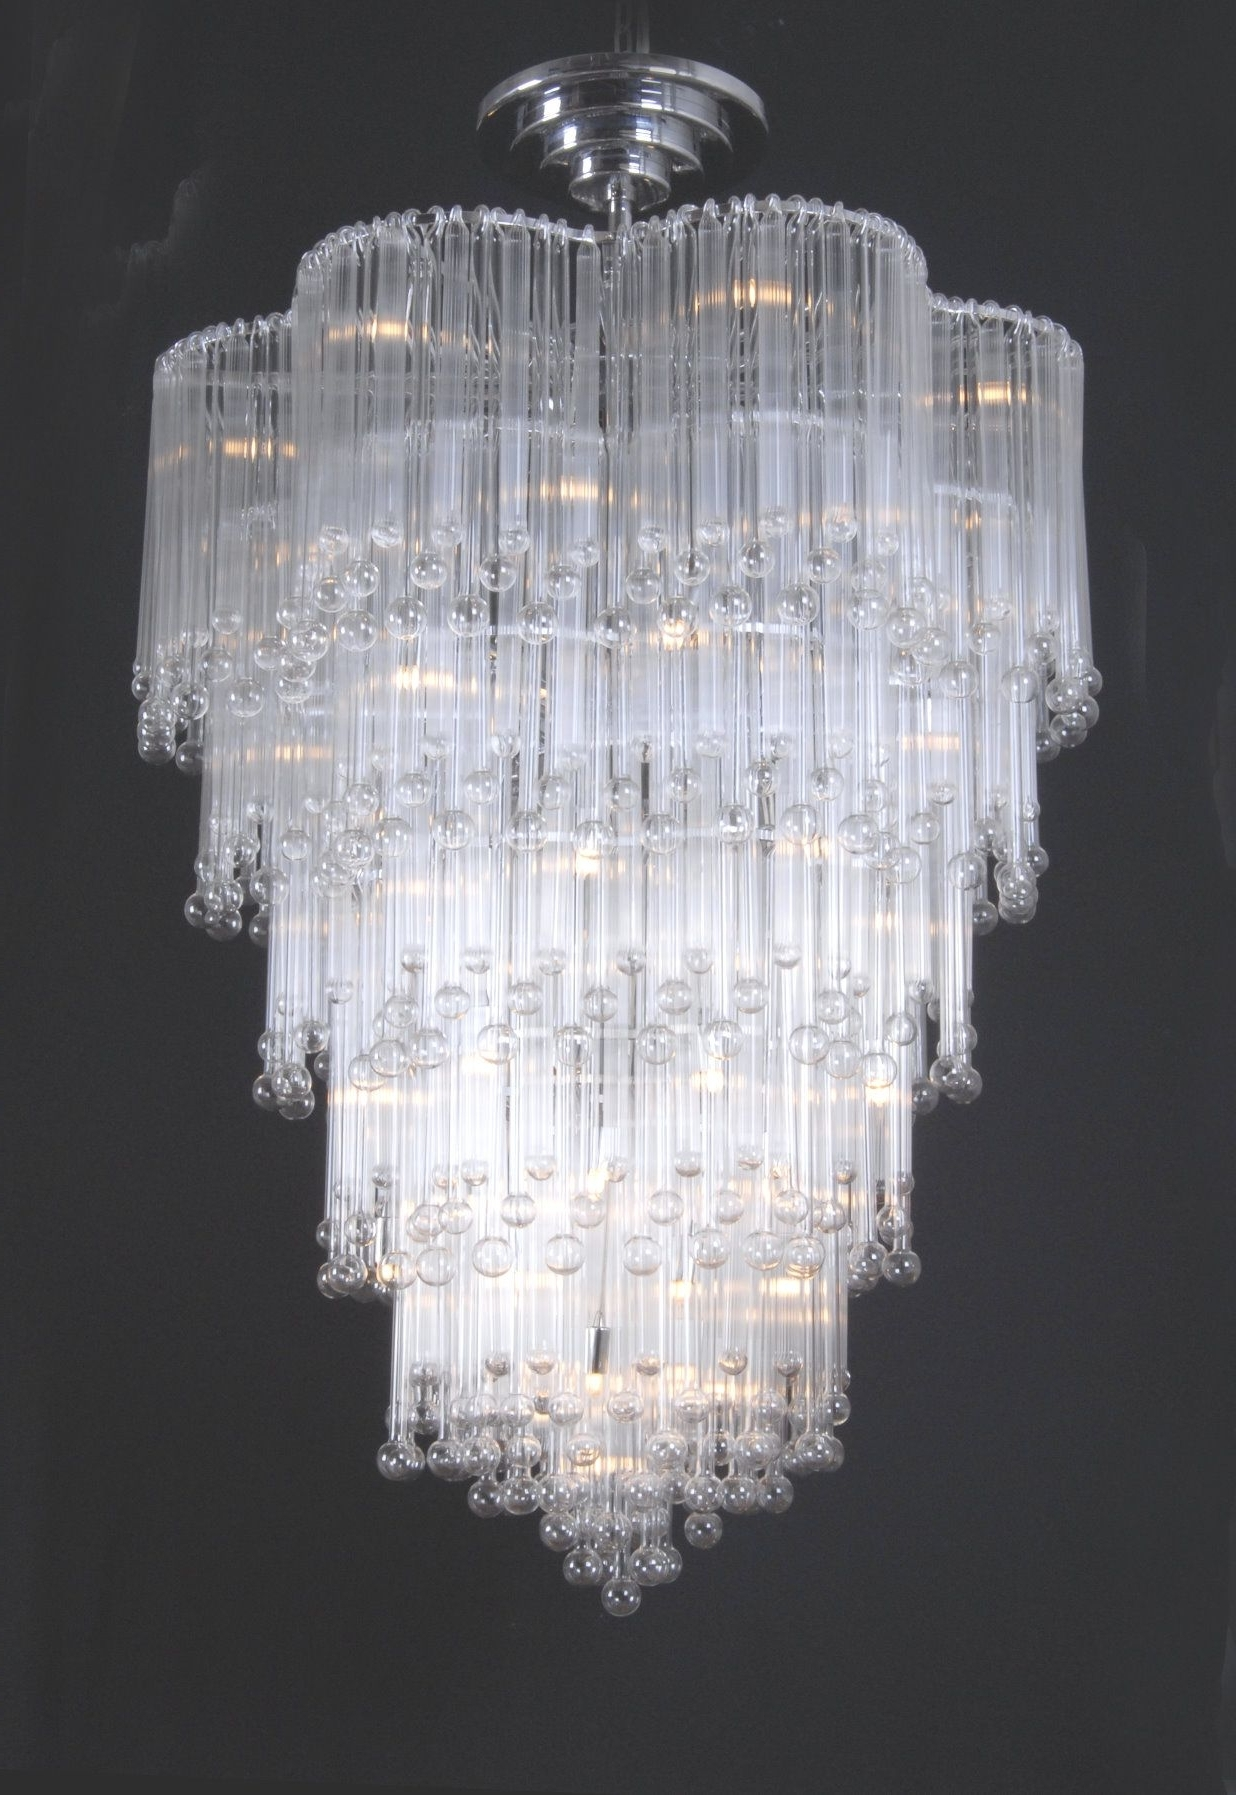 Italian Chandelier, Chandeliers And Blown Glass Intended For Latest Modern Italian Chandeliers (View 7 of 20)